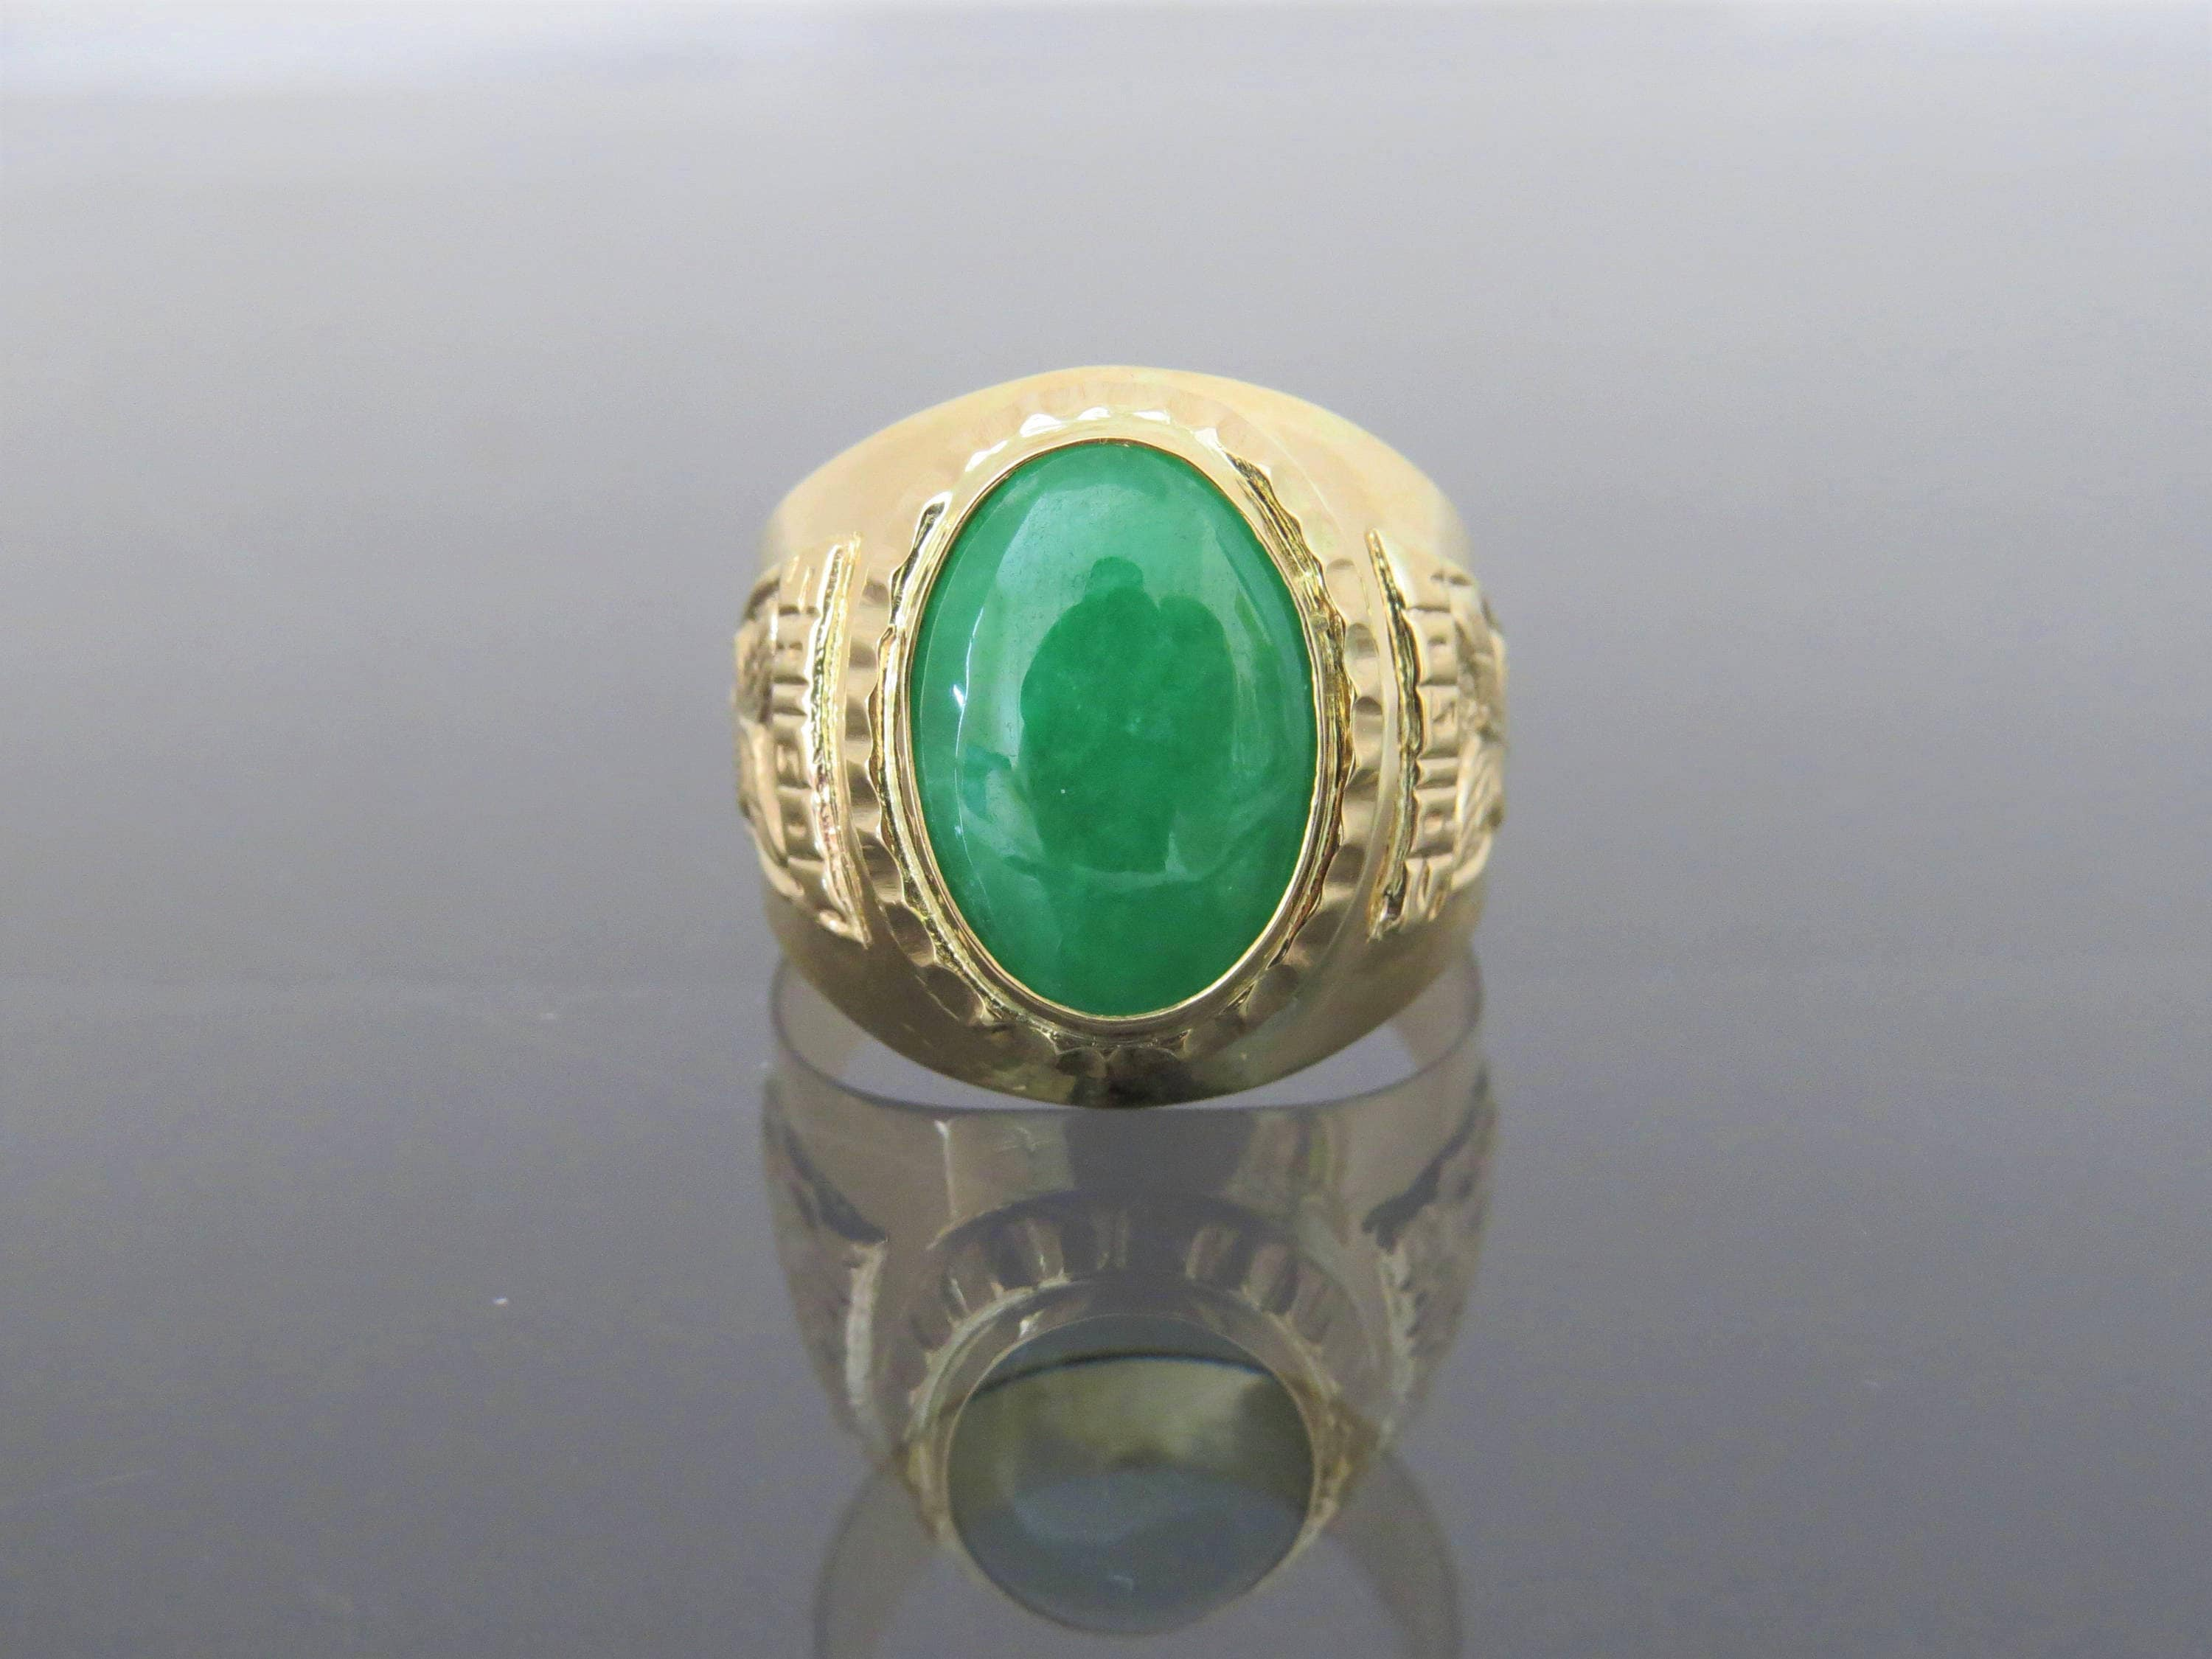 ring cfm mens s search rings diamond bands accent emerald jewelry wedding head gold yellow men list lion